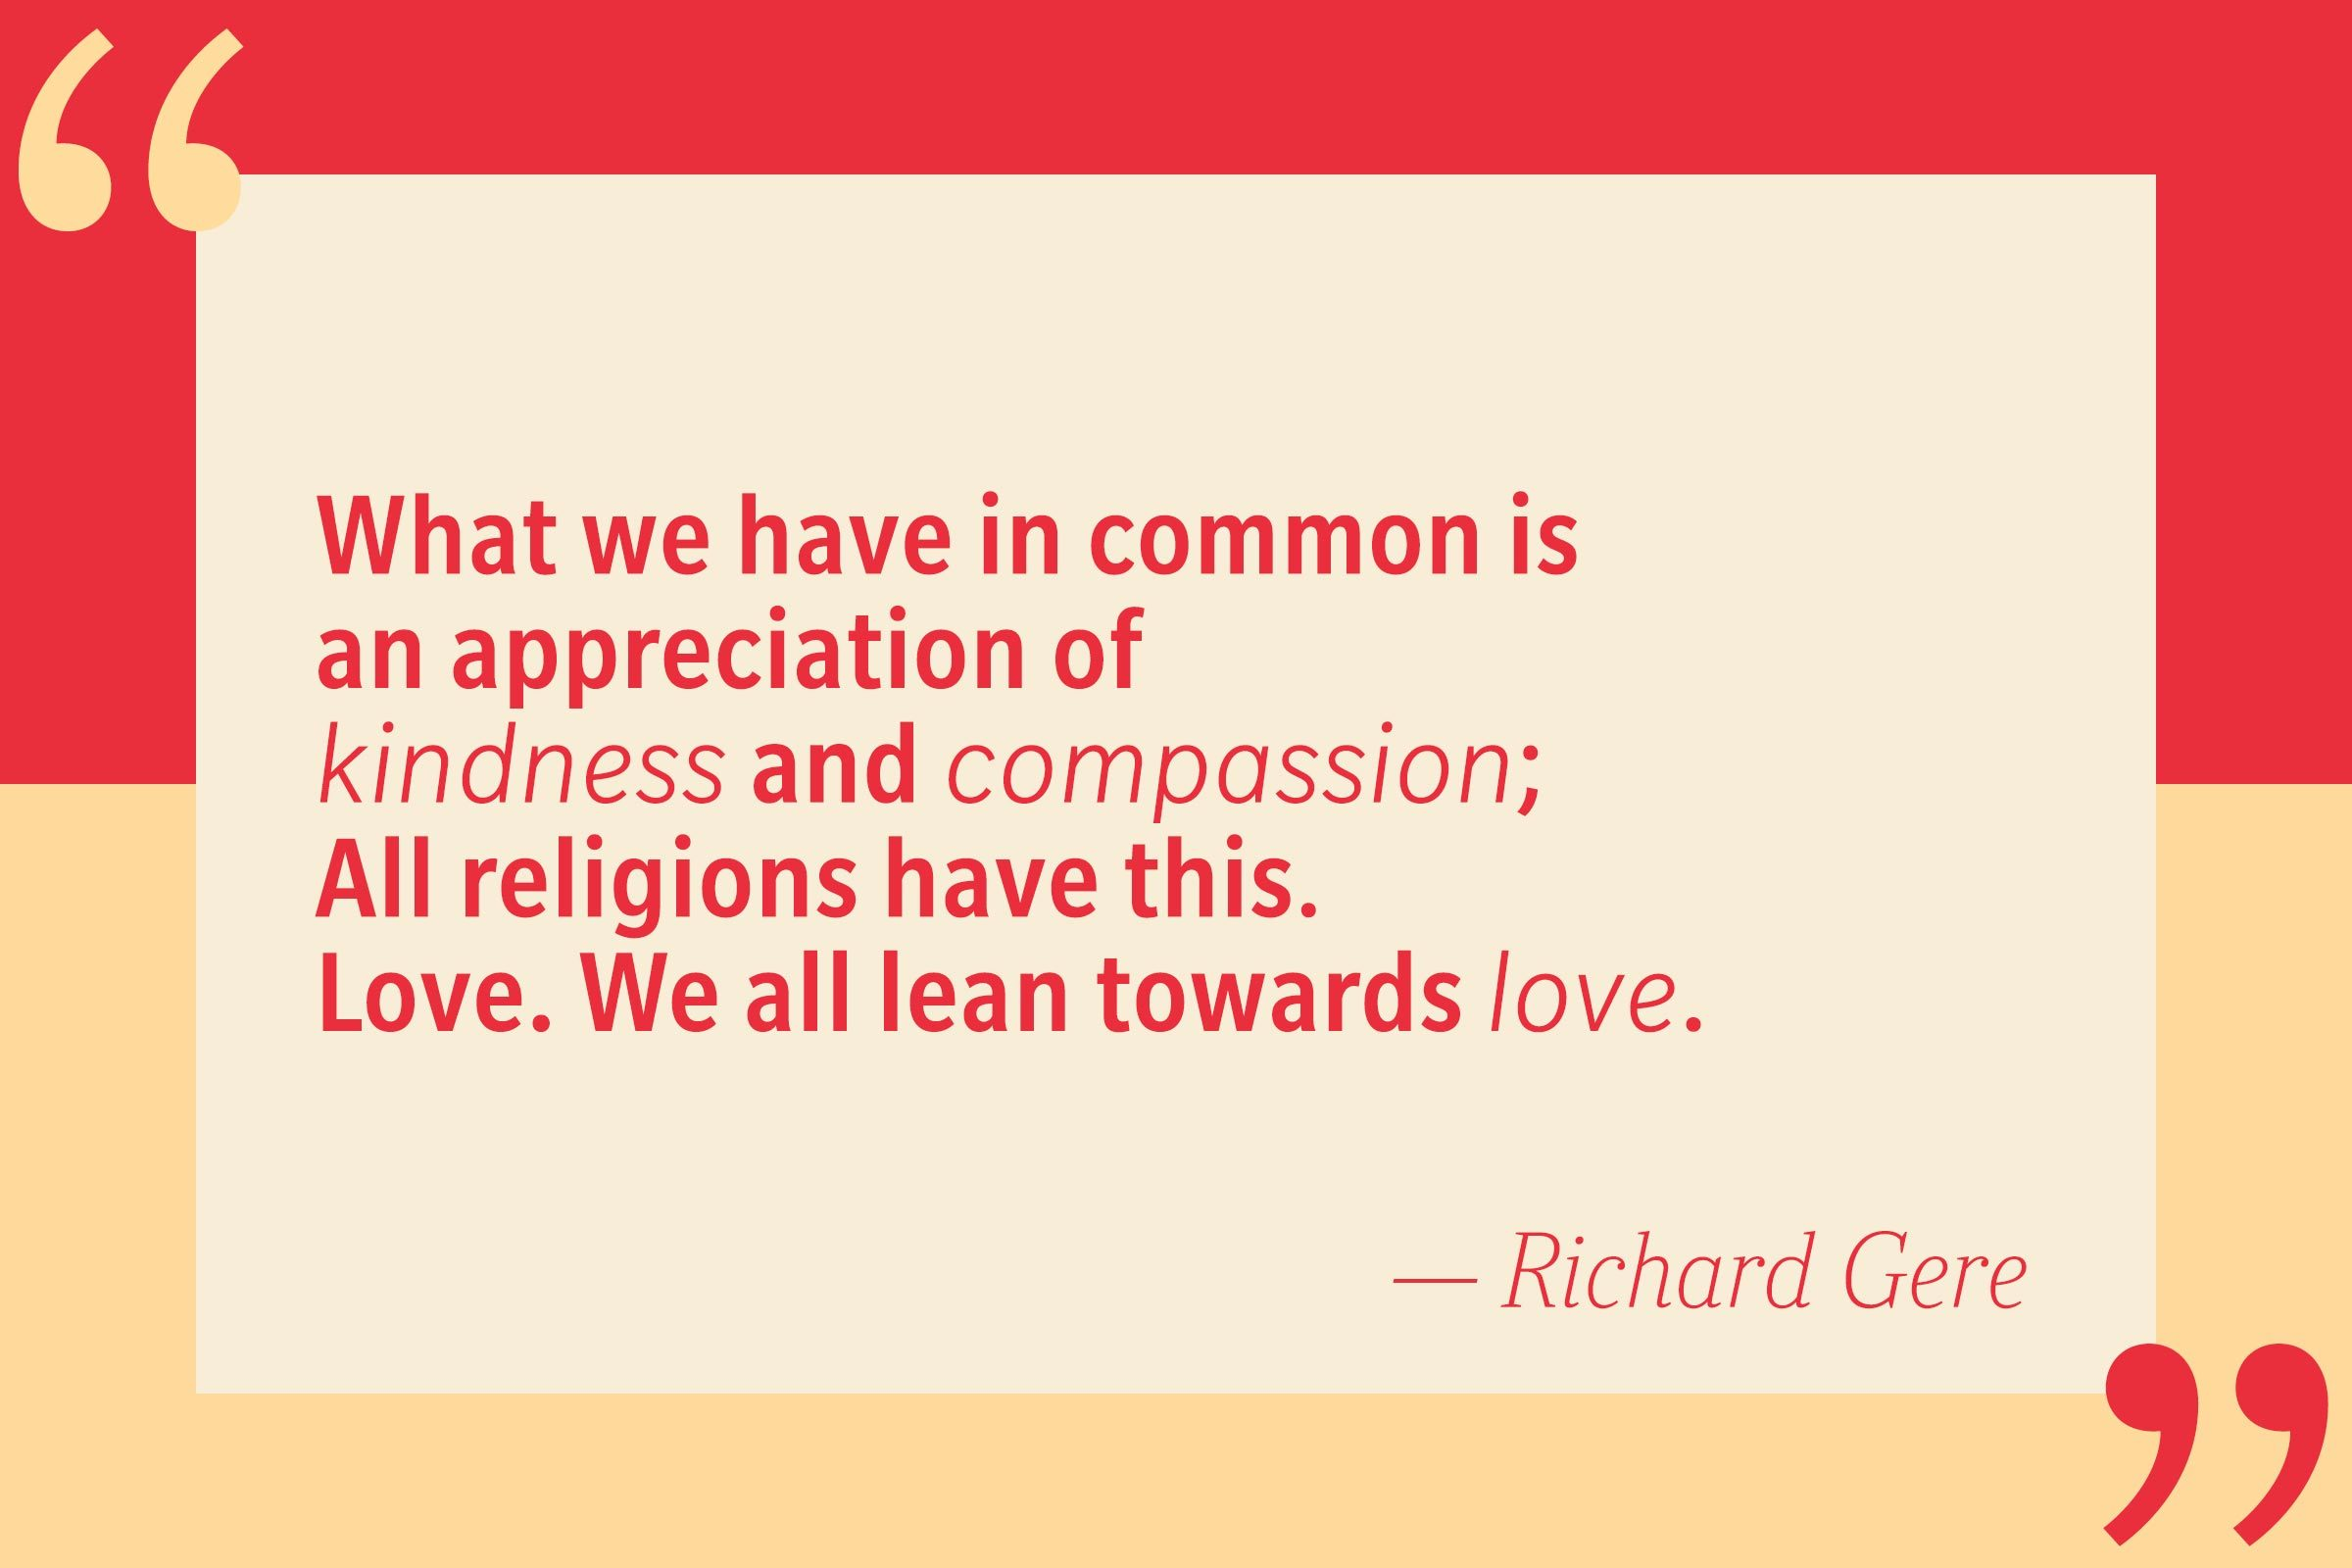 What we all have in common is an appreciation of kindness and compassion; all the religions have this. Love. We all lean towards love. — Richard Gere